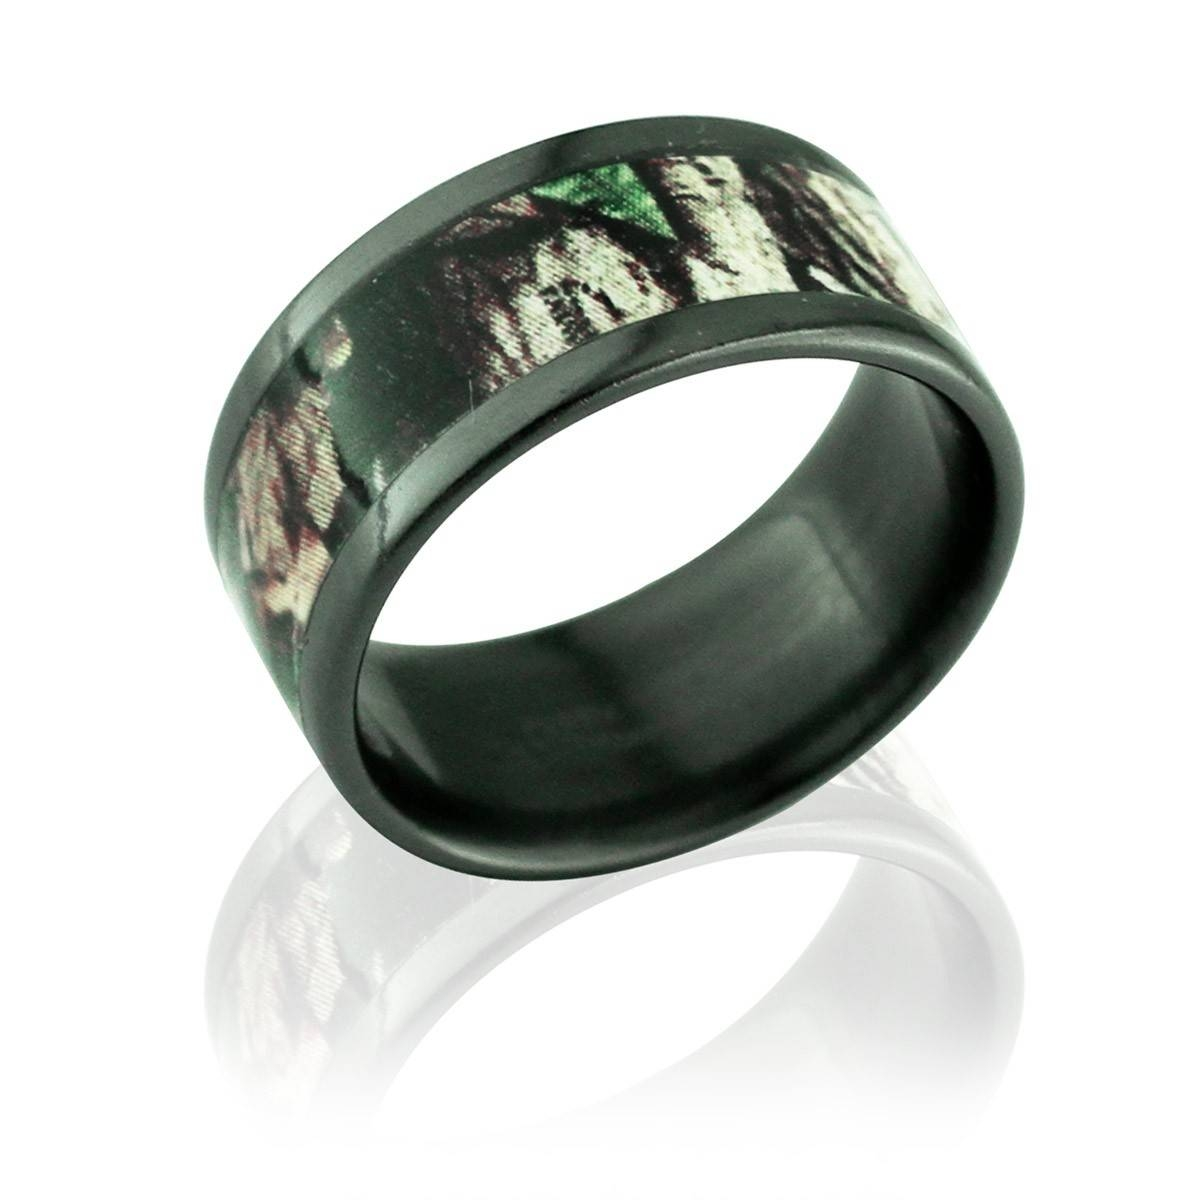 45 camo wedding ring sets for him and her camo wedding ring set for camouflage - Camo Wedding Ring Sets For Him And Her